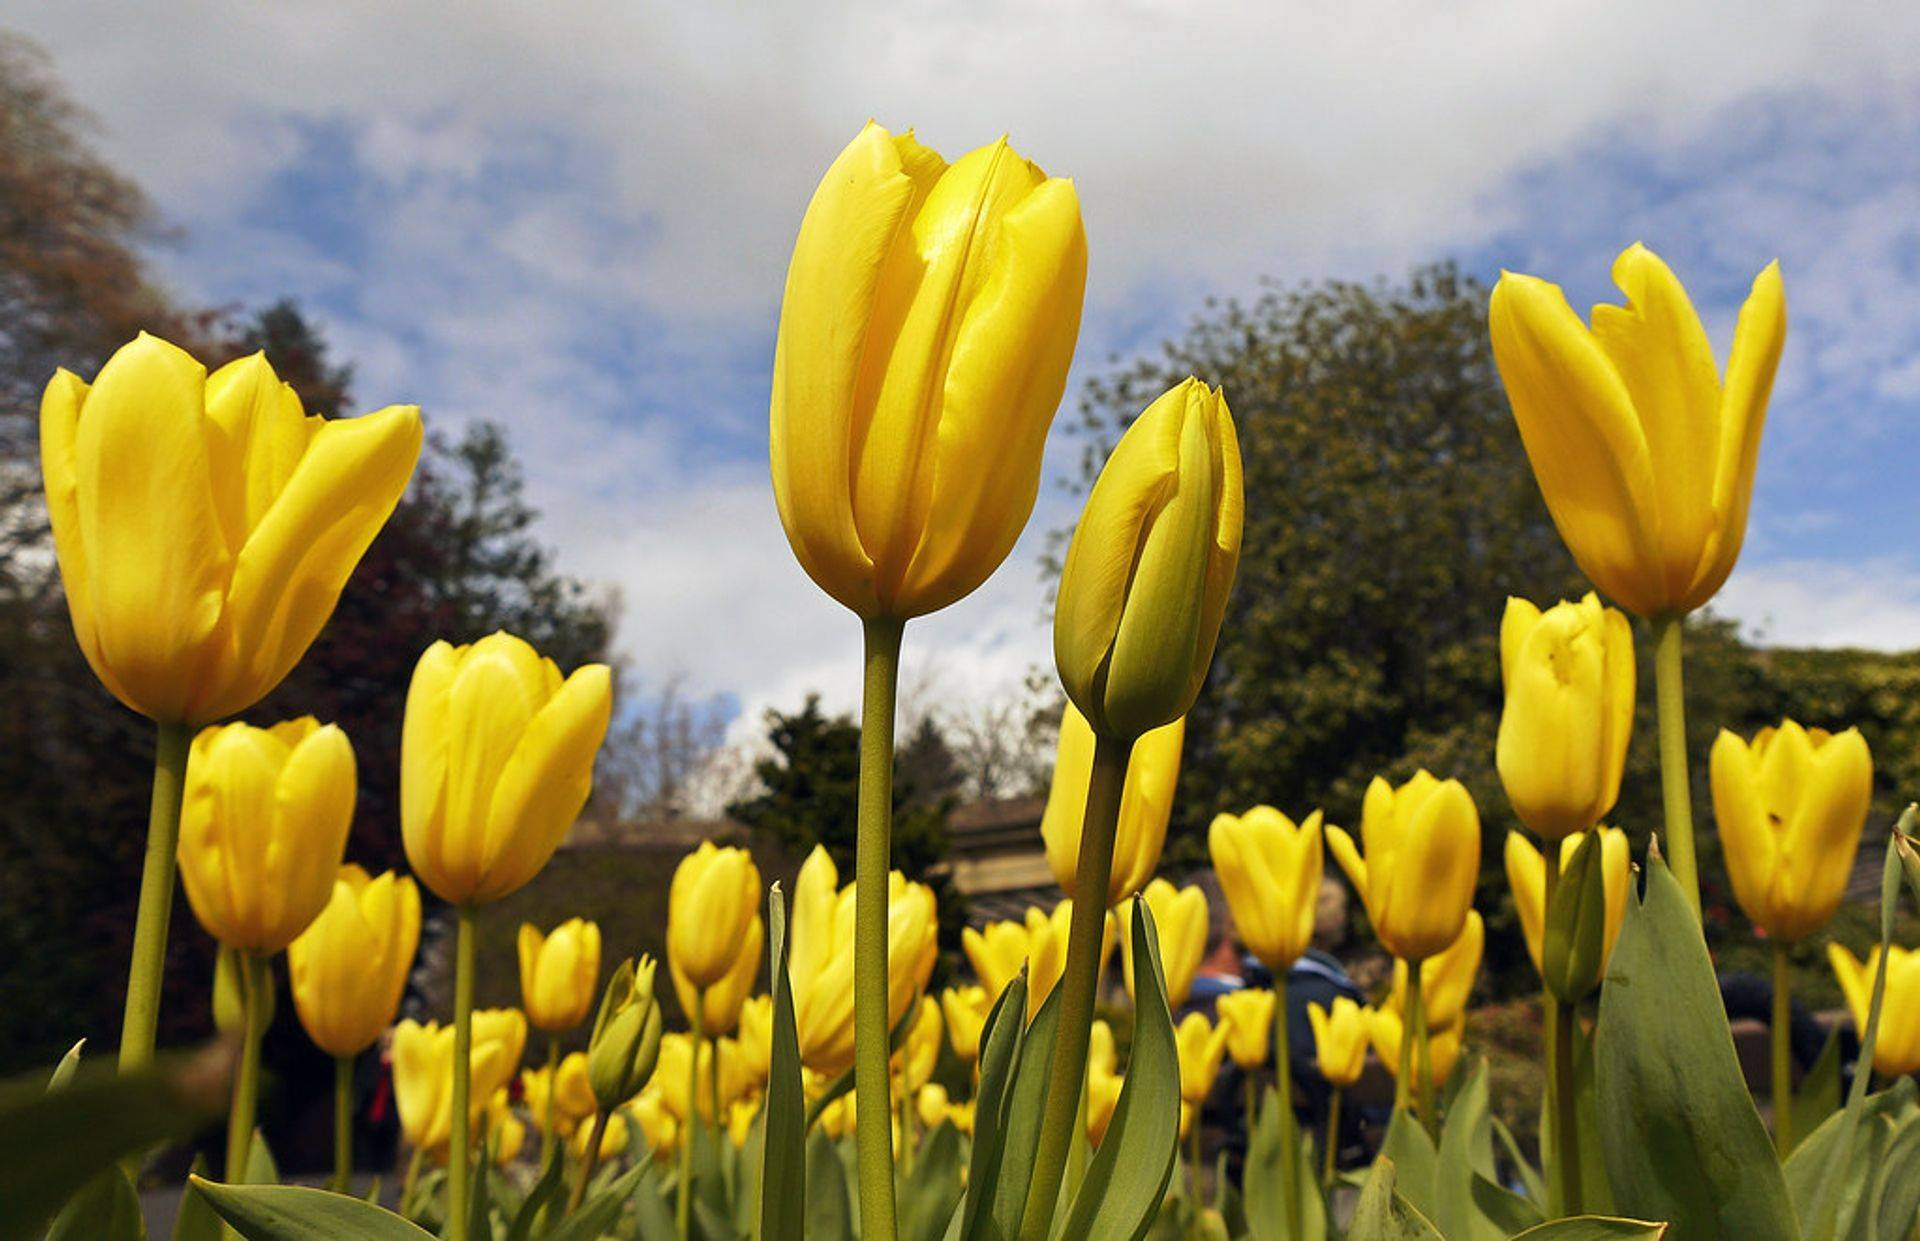 The Green Man Lawn & Landscaping yellow tulips